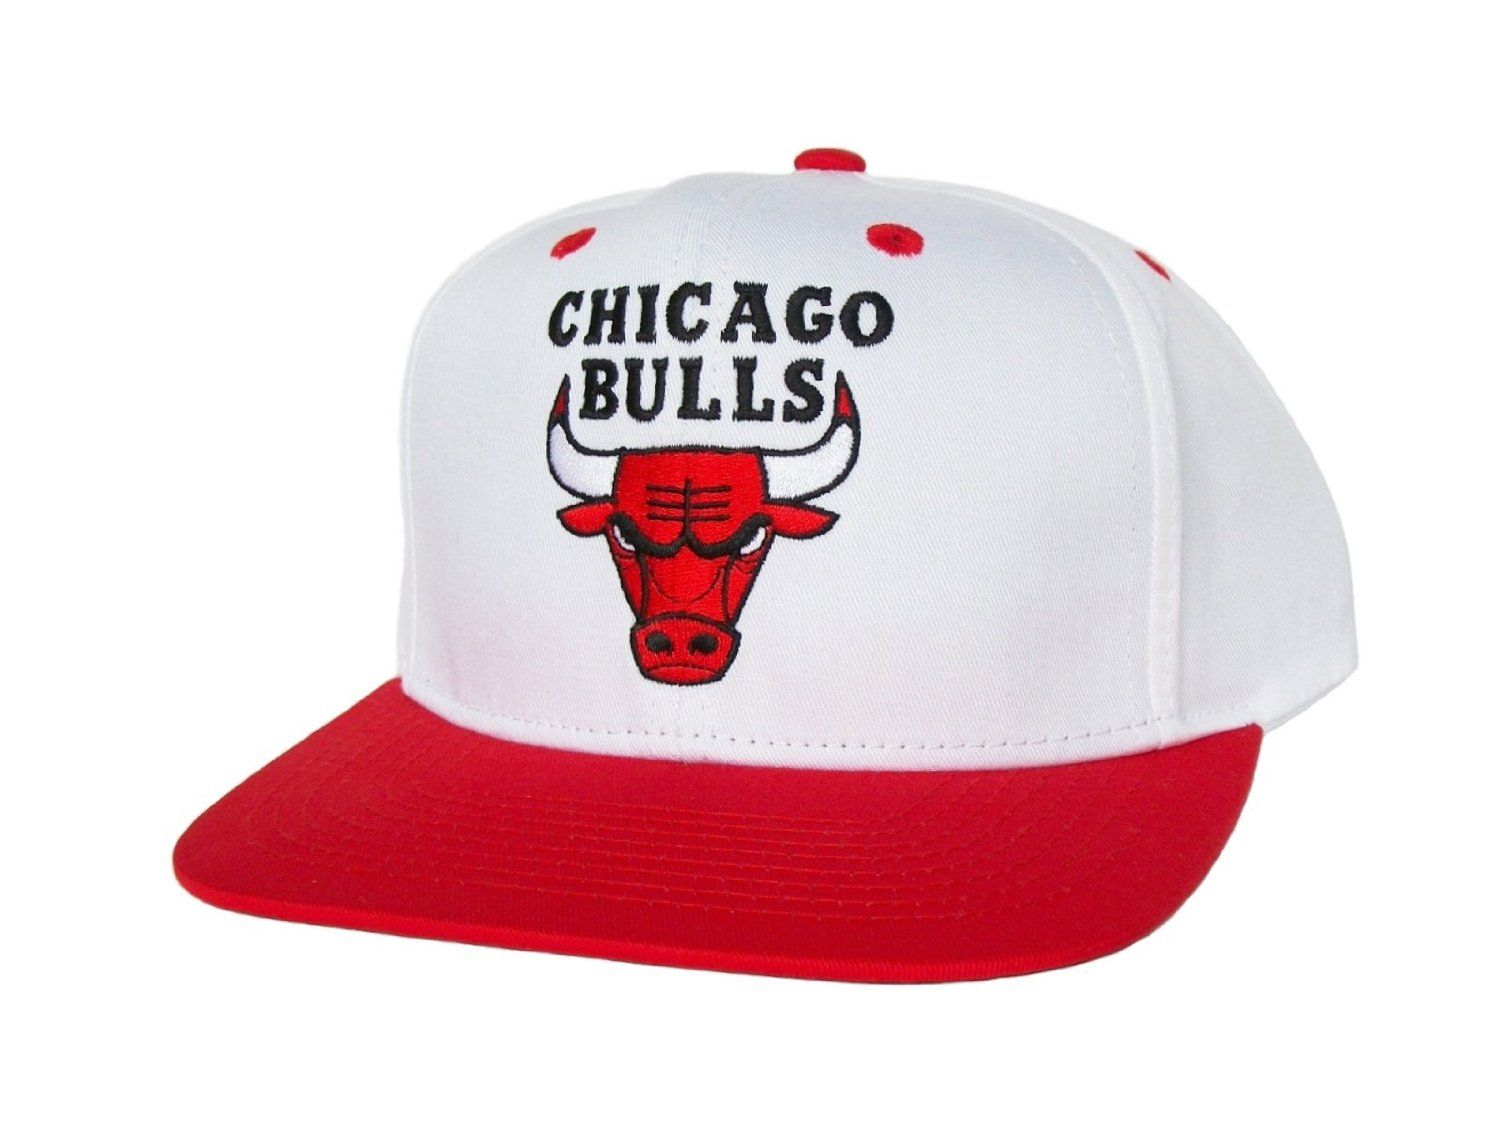 CHICAGO BULLS Retro Old School Snapback Hat - NBA Cap - 2 Tone White Red   Amazon.co.uk  Sports   Outdoors 21c8c7fefacd